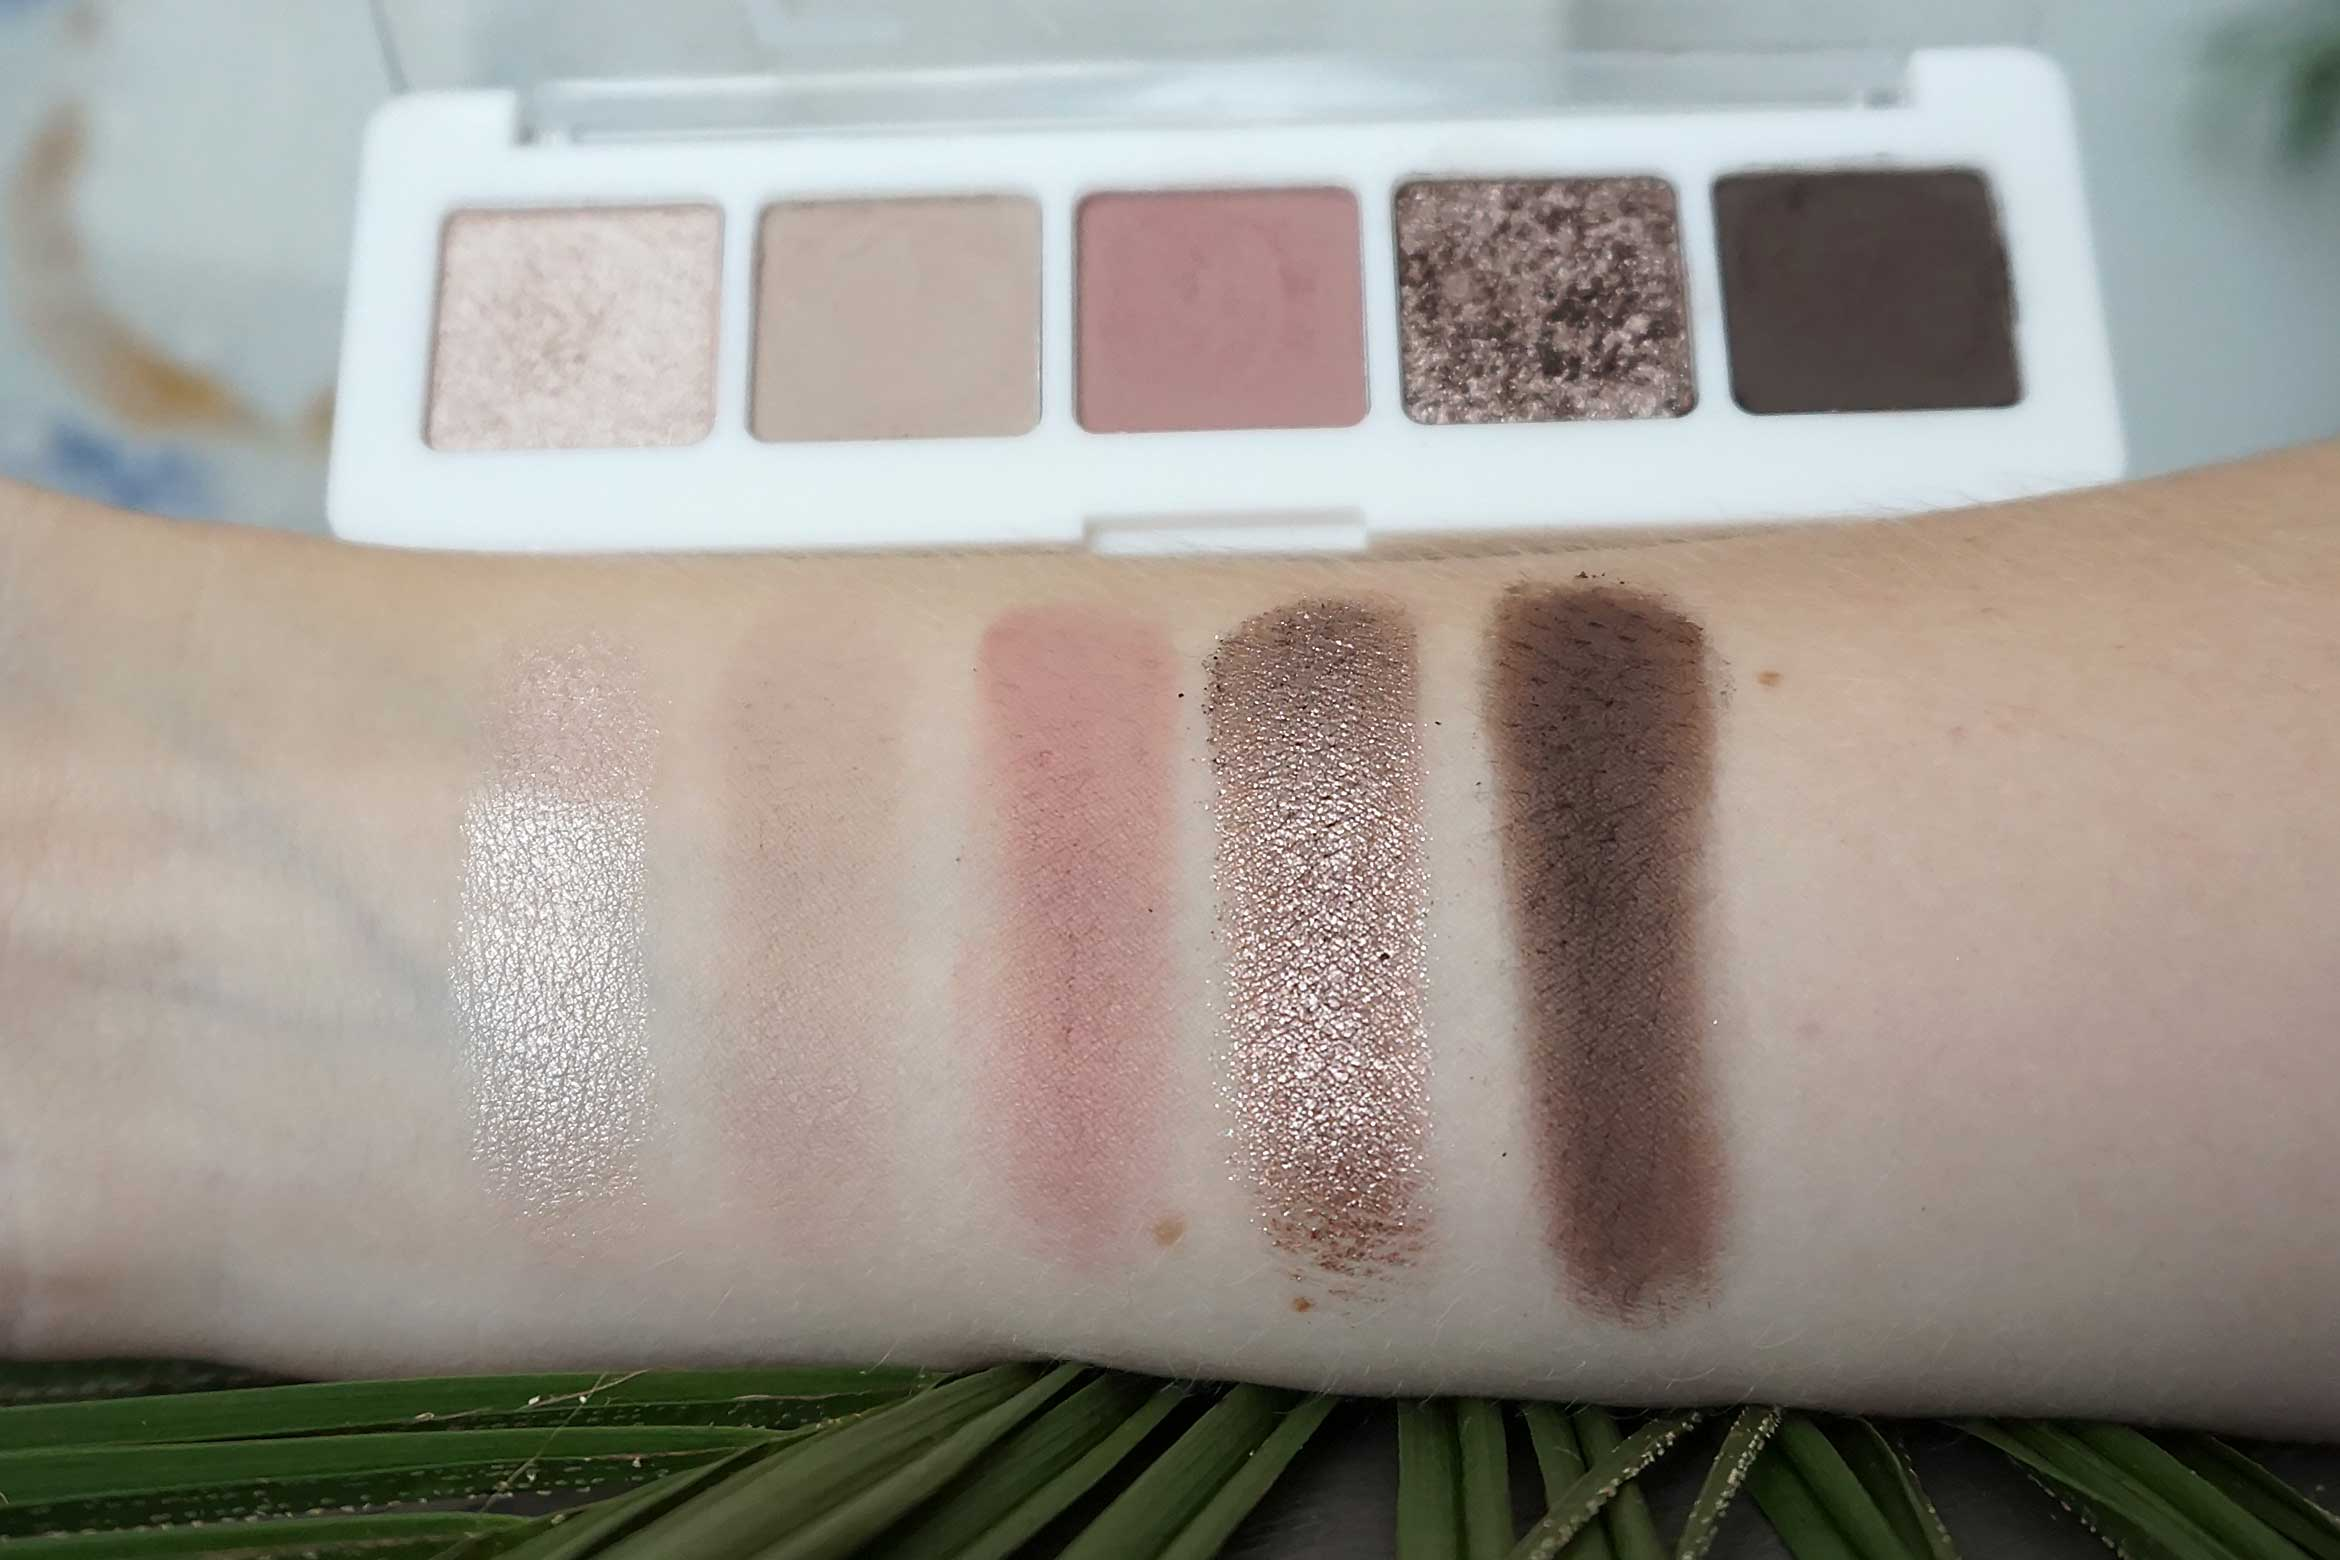 catrice 5 in a box mini eyeshadow palette swatch 020 soft rose look review